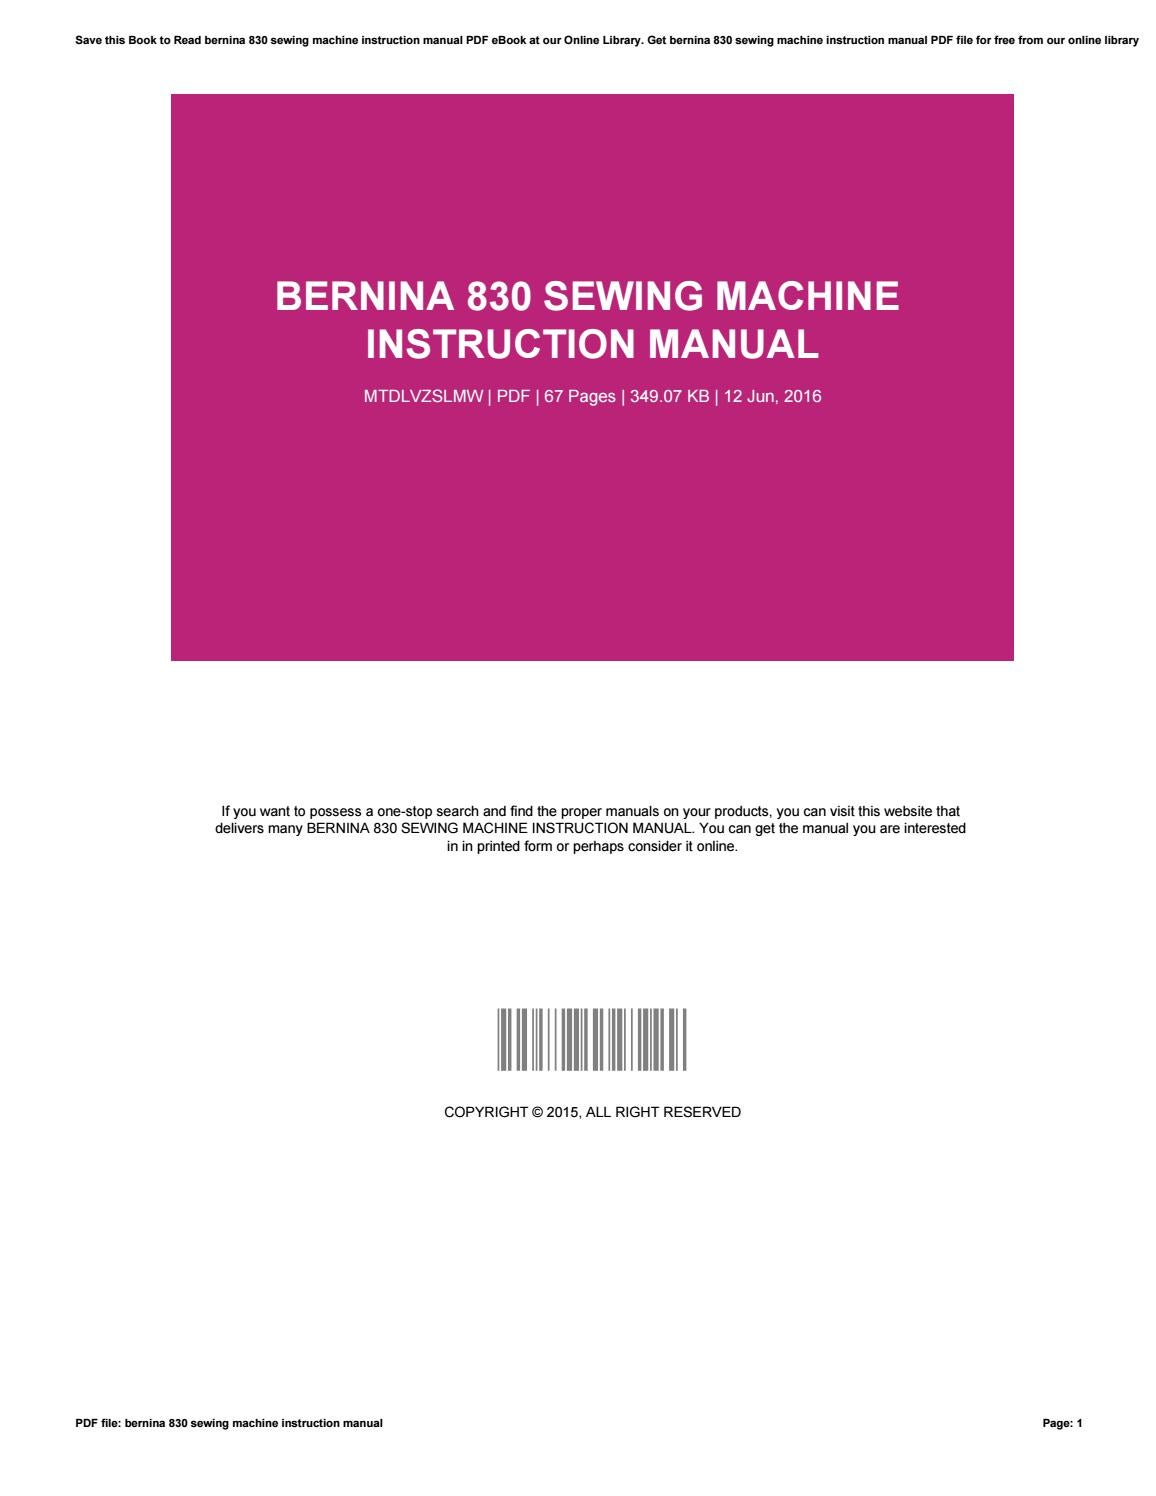 Instruction Manuals Online For Free Wiring Diagram